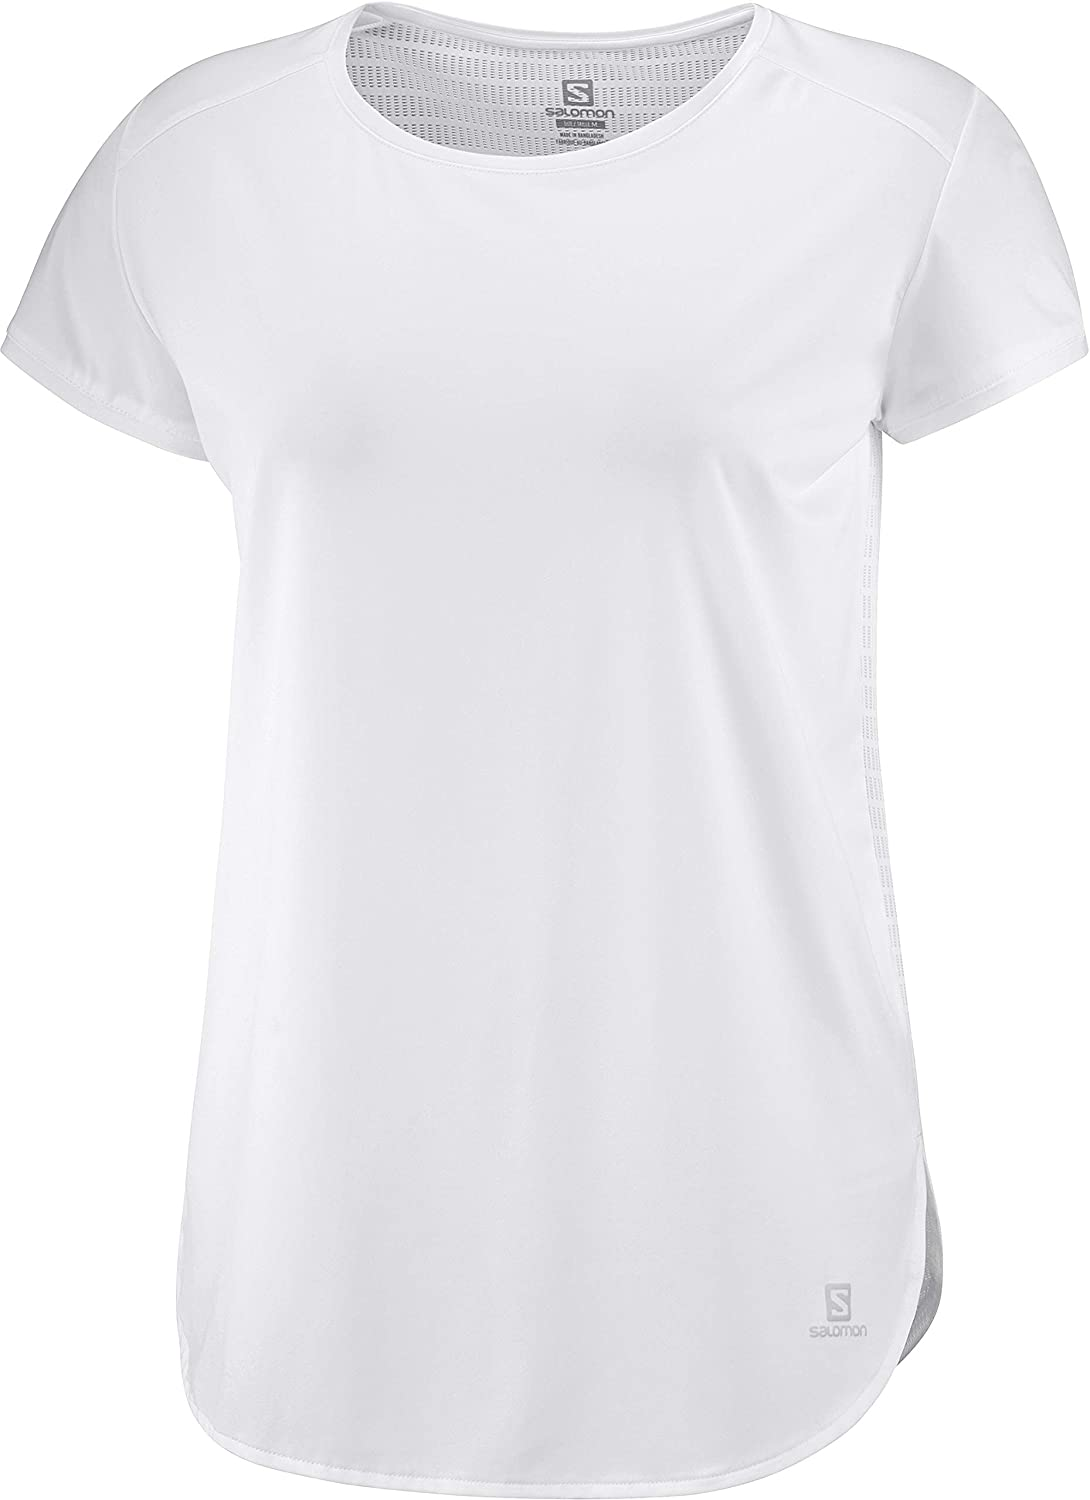 SALOMON Comet Breeze W Camiseta de Manga Corta, Mujer, Blanco (White), 2XL: Amazon.es: Deportes y aire libre